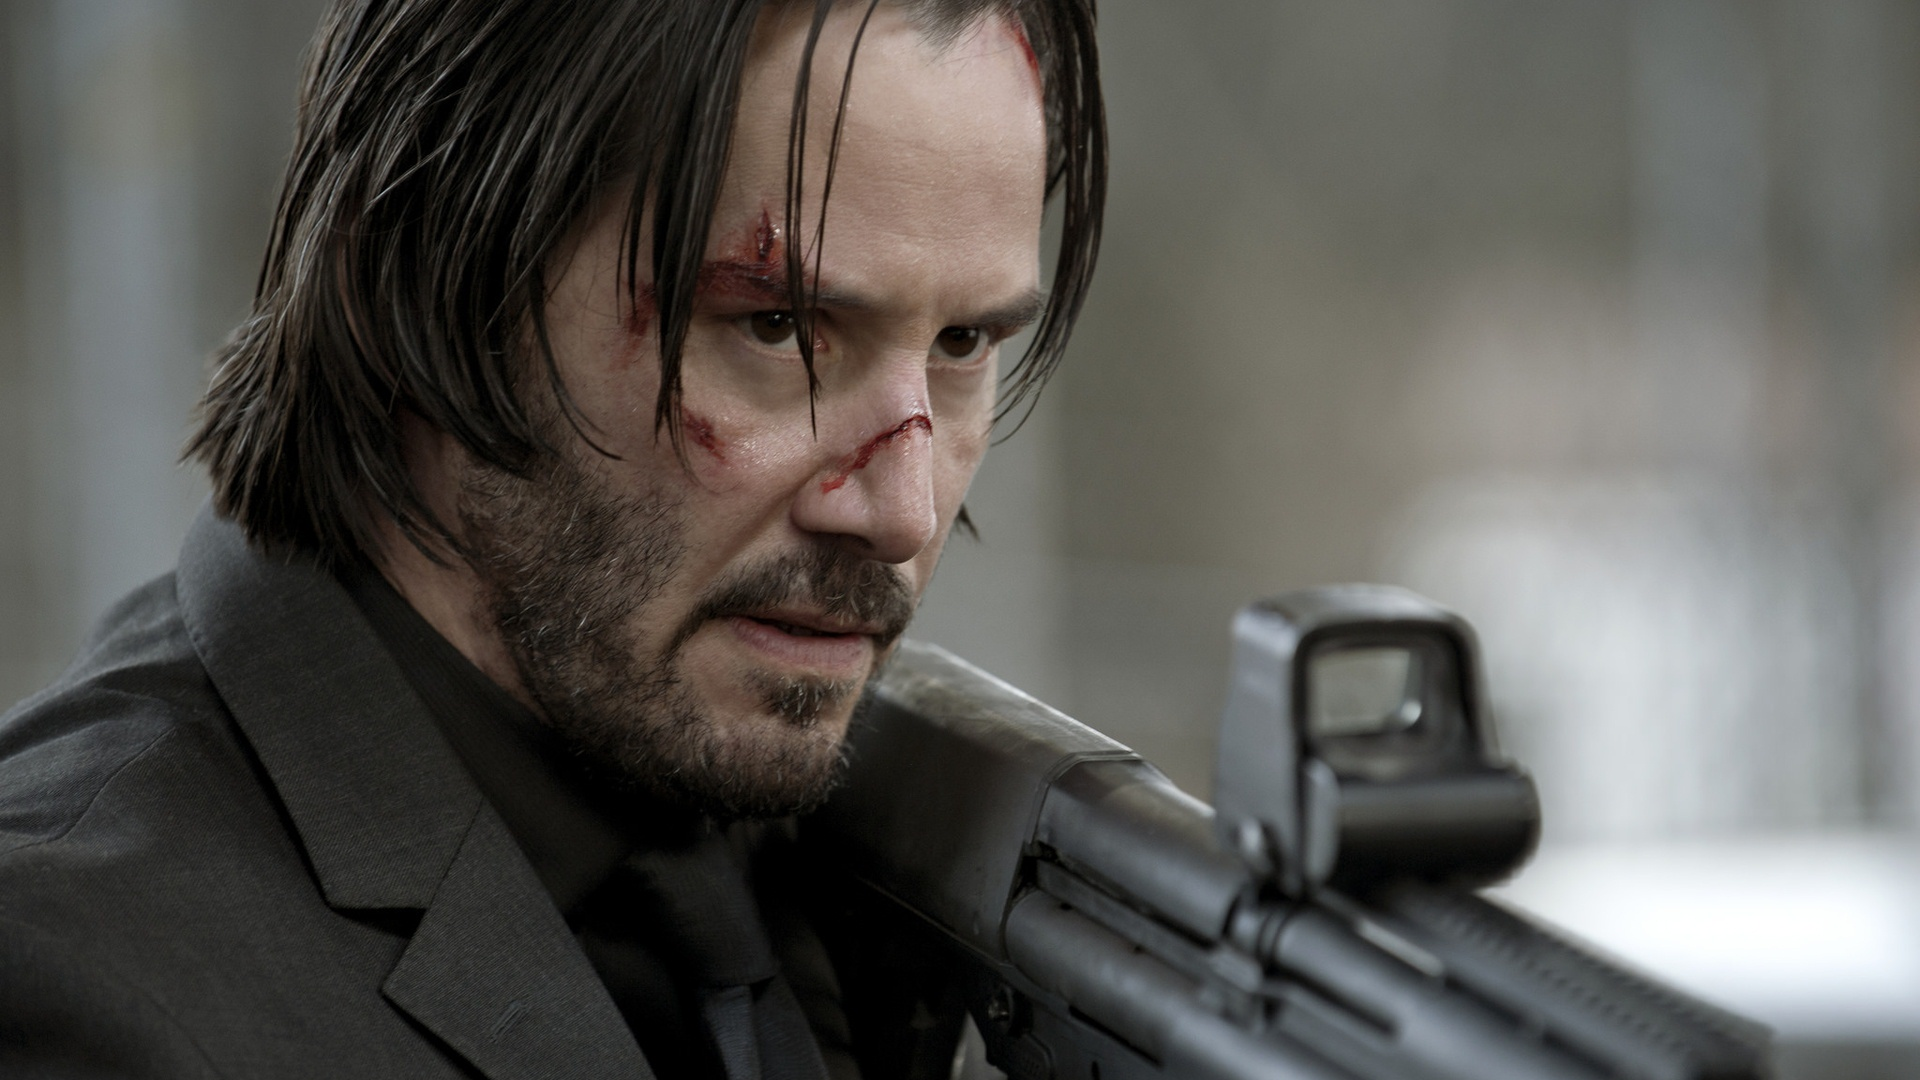 The New John Wick: Chapter 2 Trailer Gets Violent